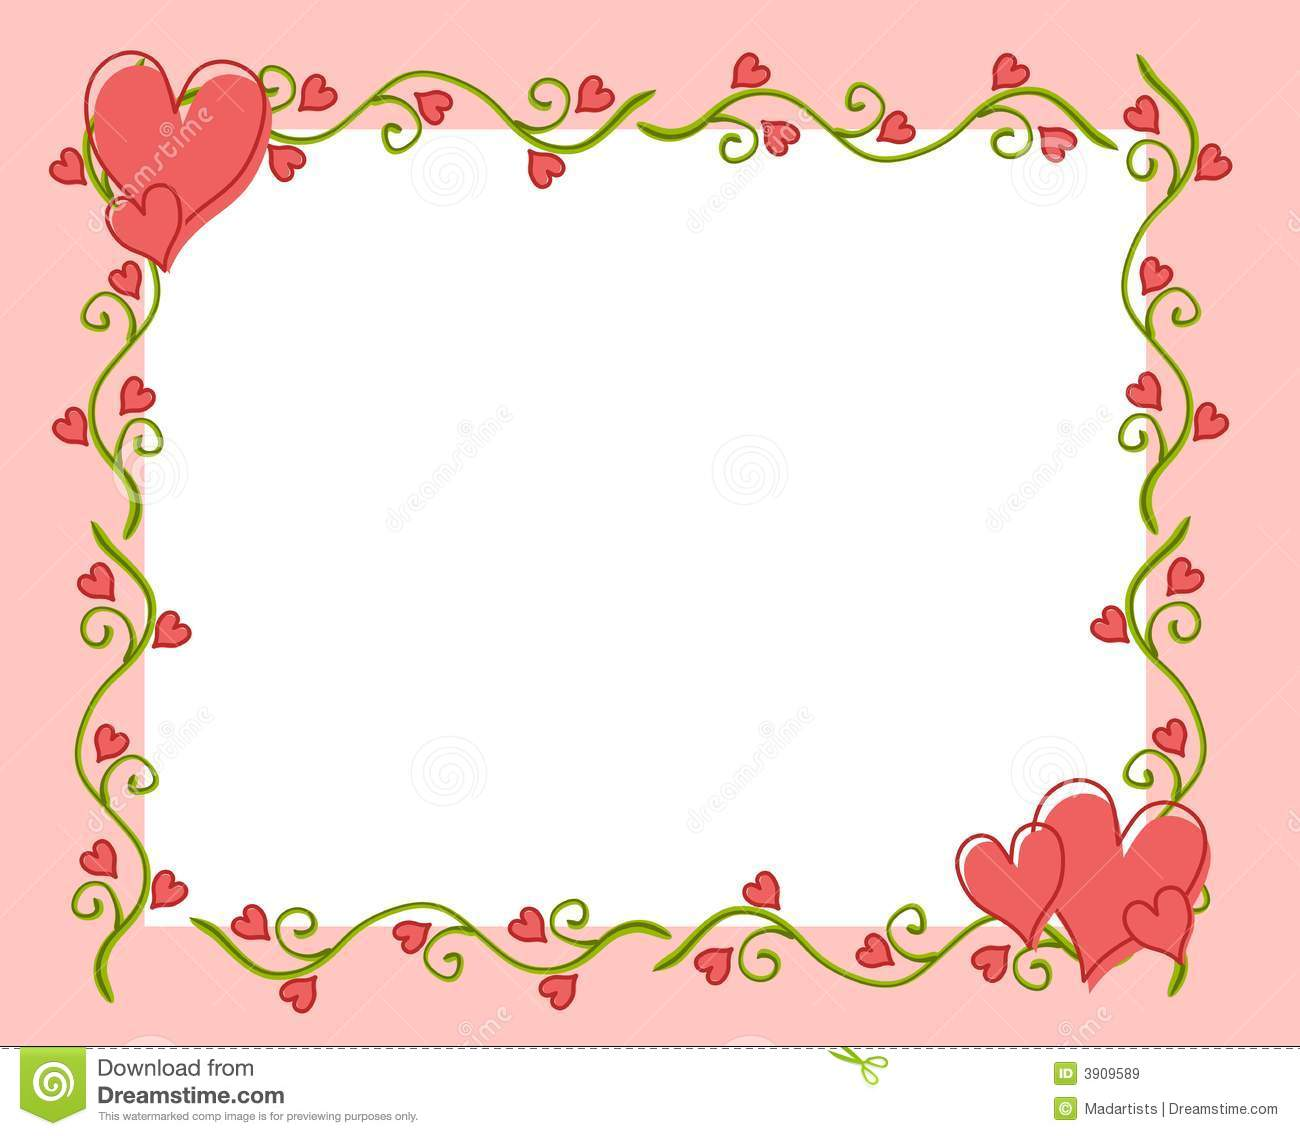 heart floral frame valentine - photo #16